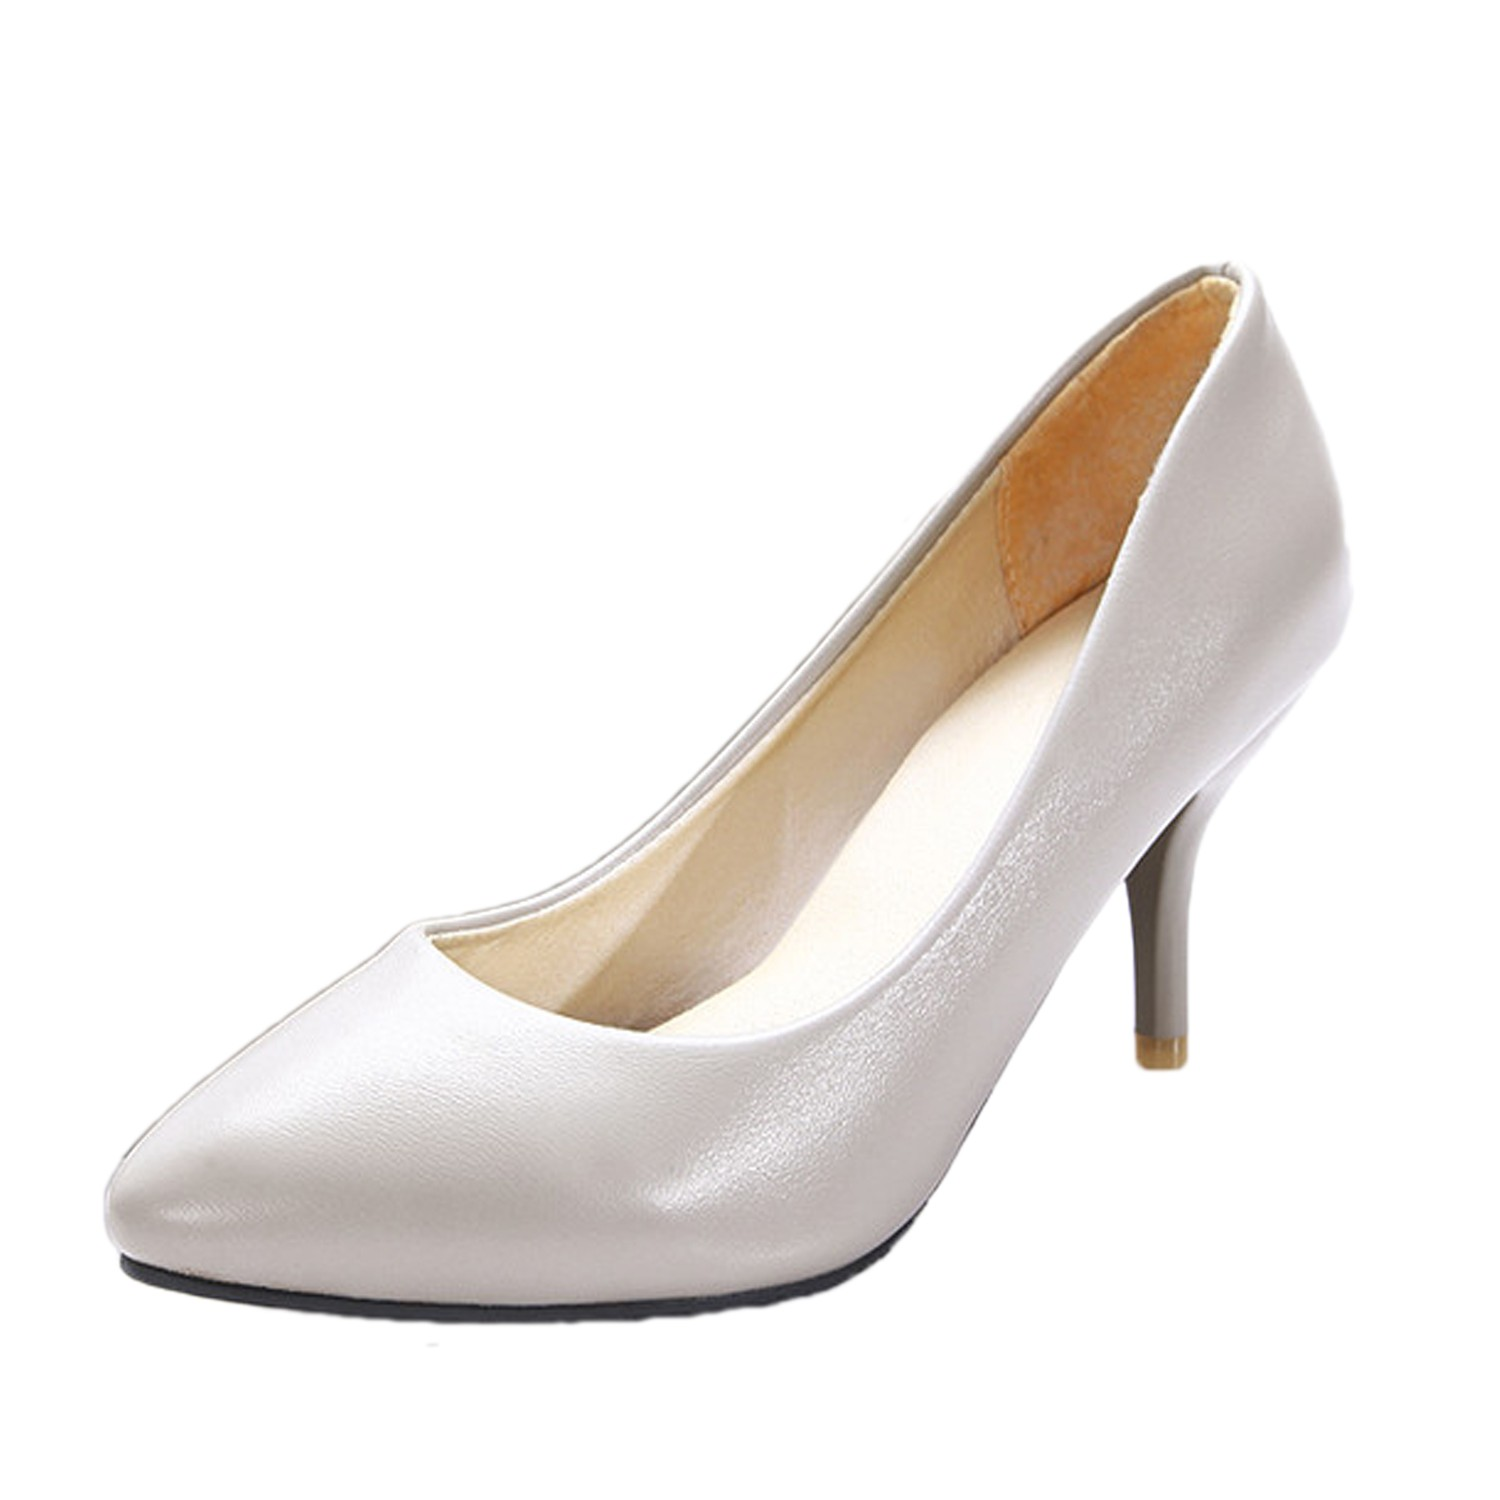 grey high heels small casual pumps career